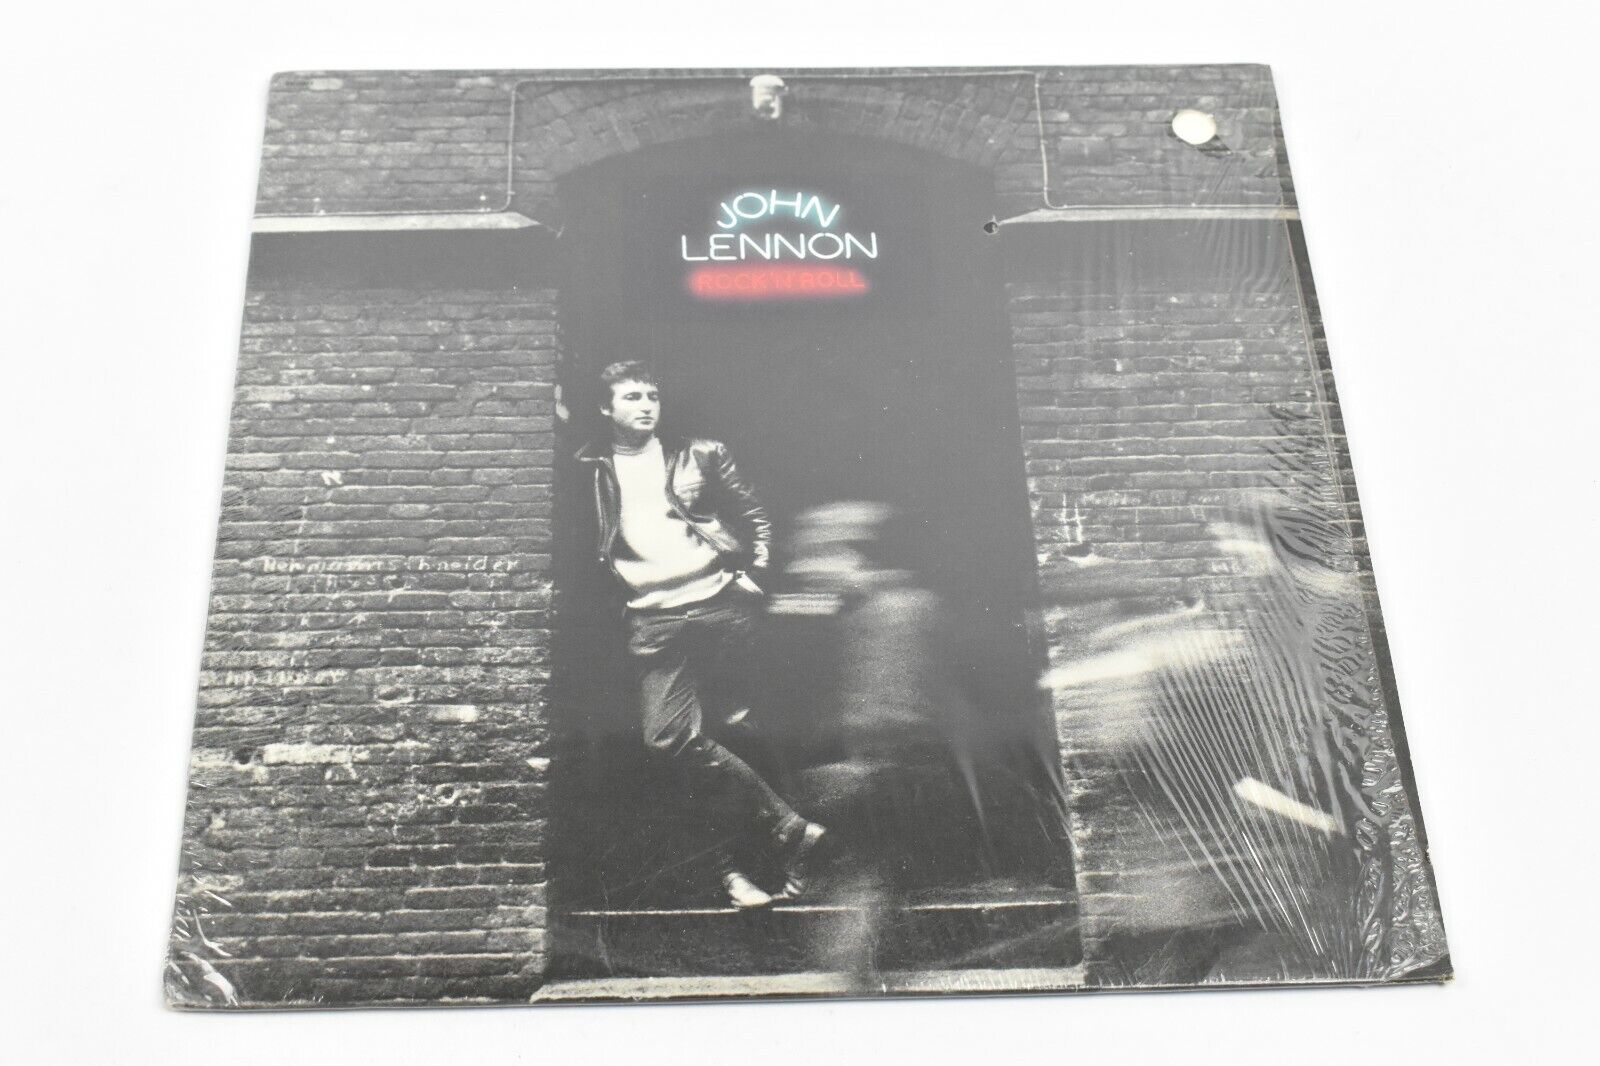 John Lennon - Rock 'N' Roll, VINYL LP